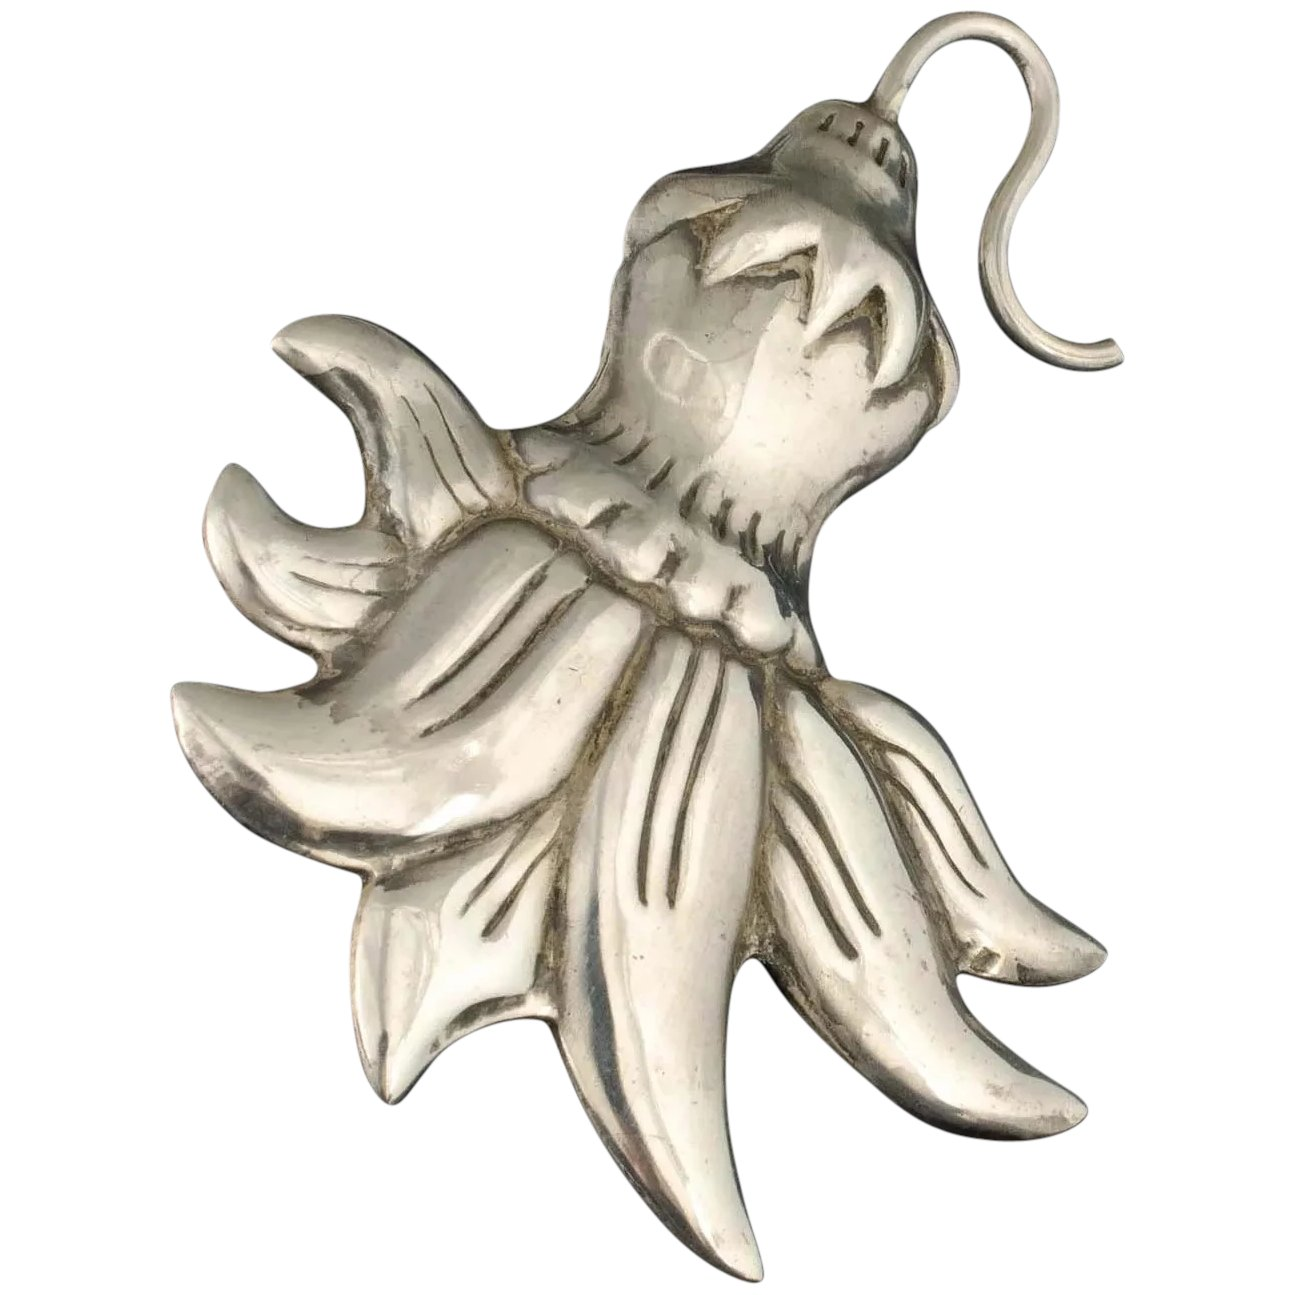 Hector Aguilar squash blossom repousse brooch pin 1940s Taxco